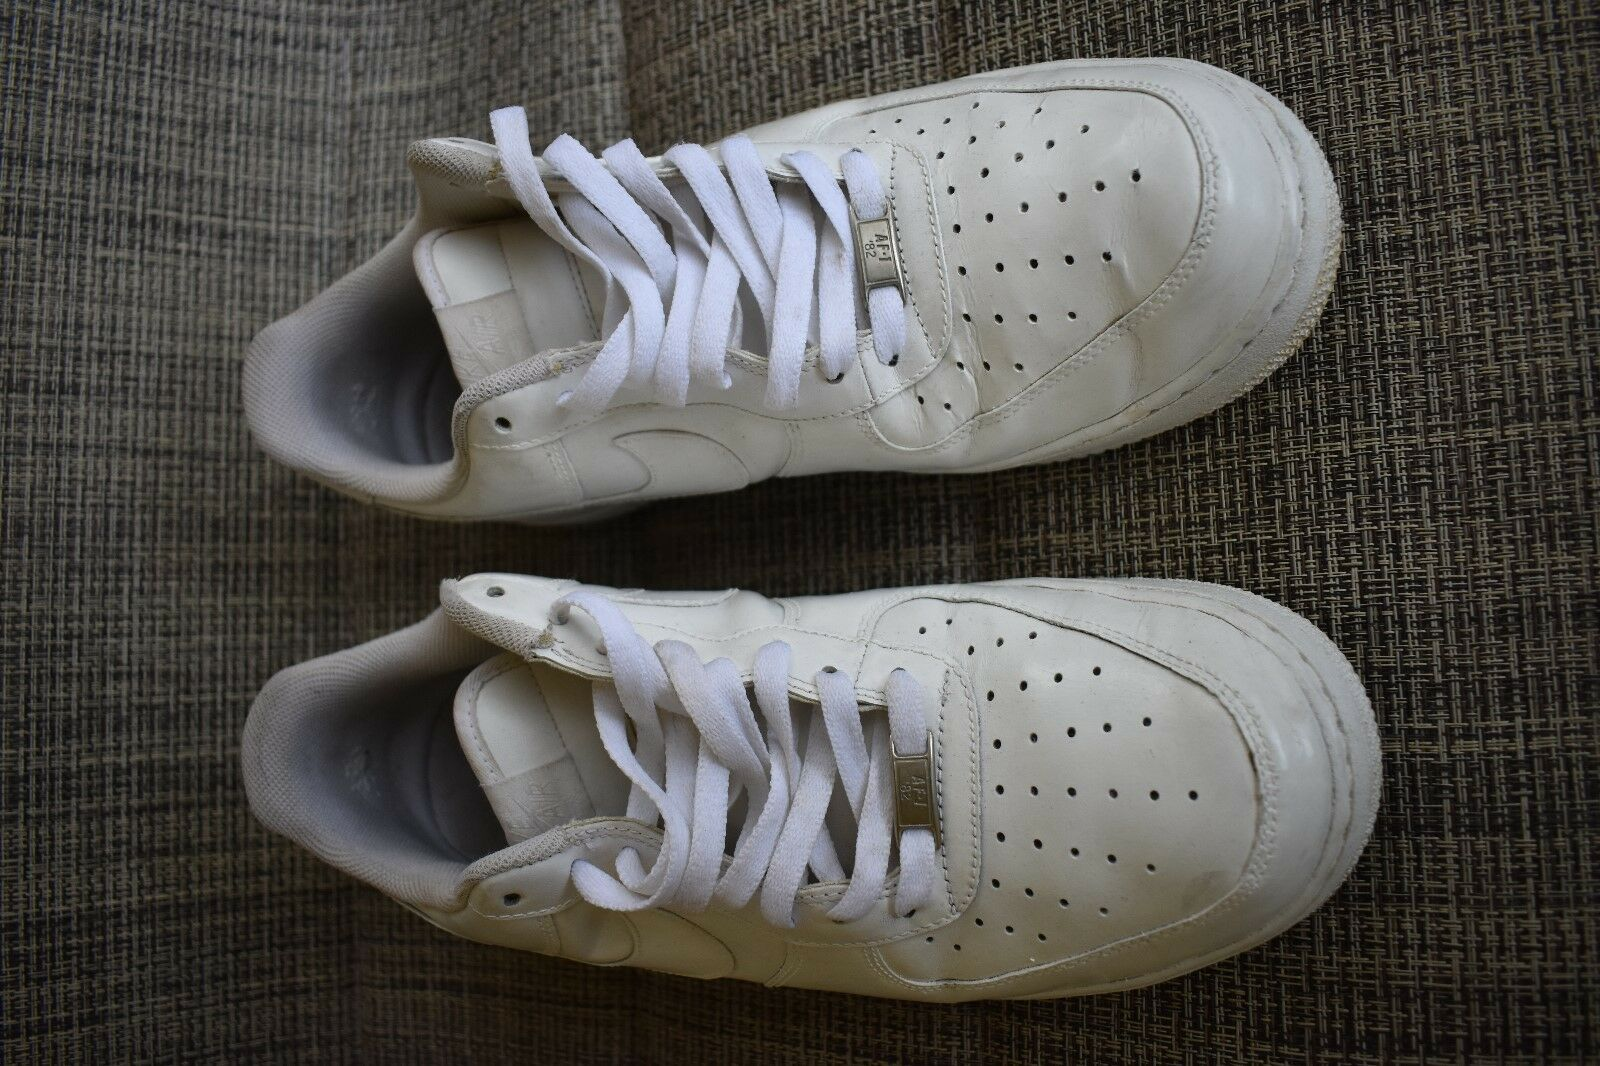 NIKE AIR FORCE 1 MENS WHITE SHOES SIZE 13 SNEAKERS Wild casual shoes